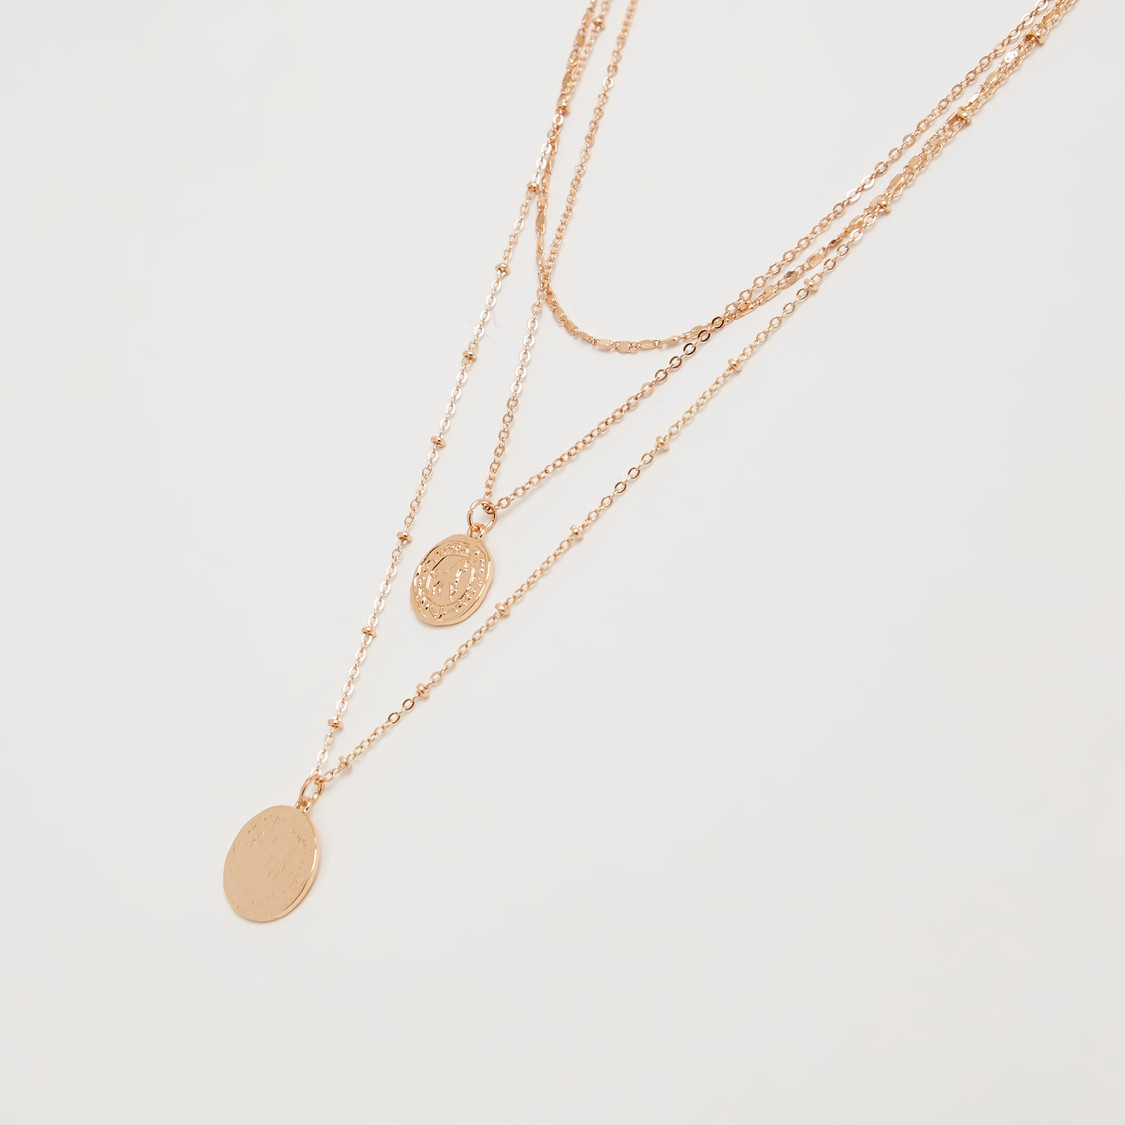 Metallic Pendant Multi-Layer Necklace with Lobster Clasp